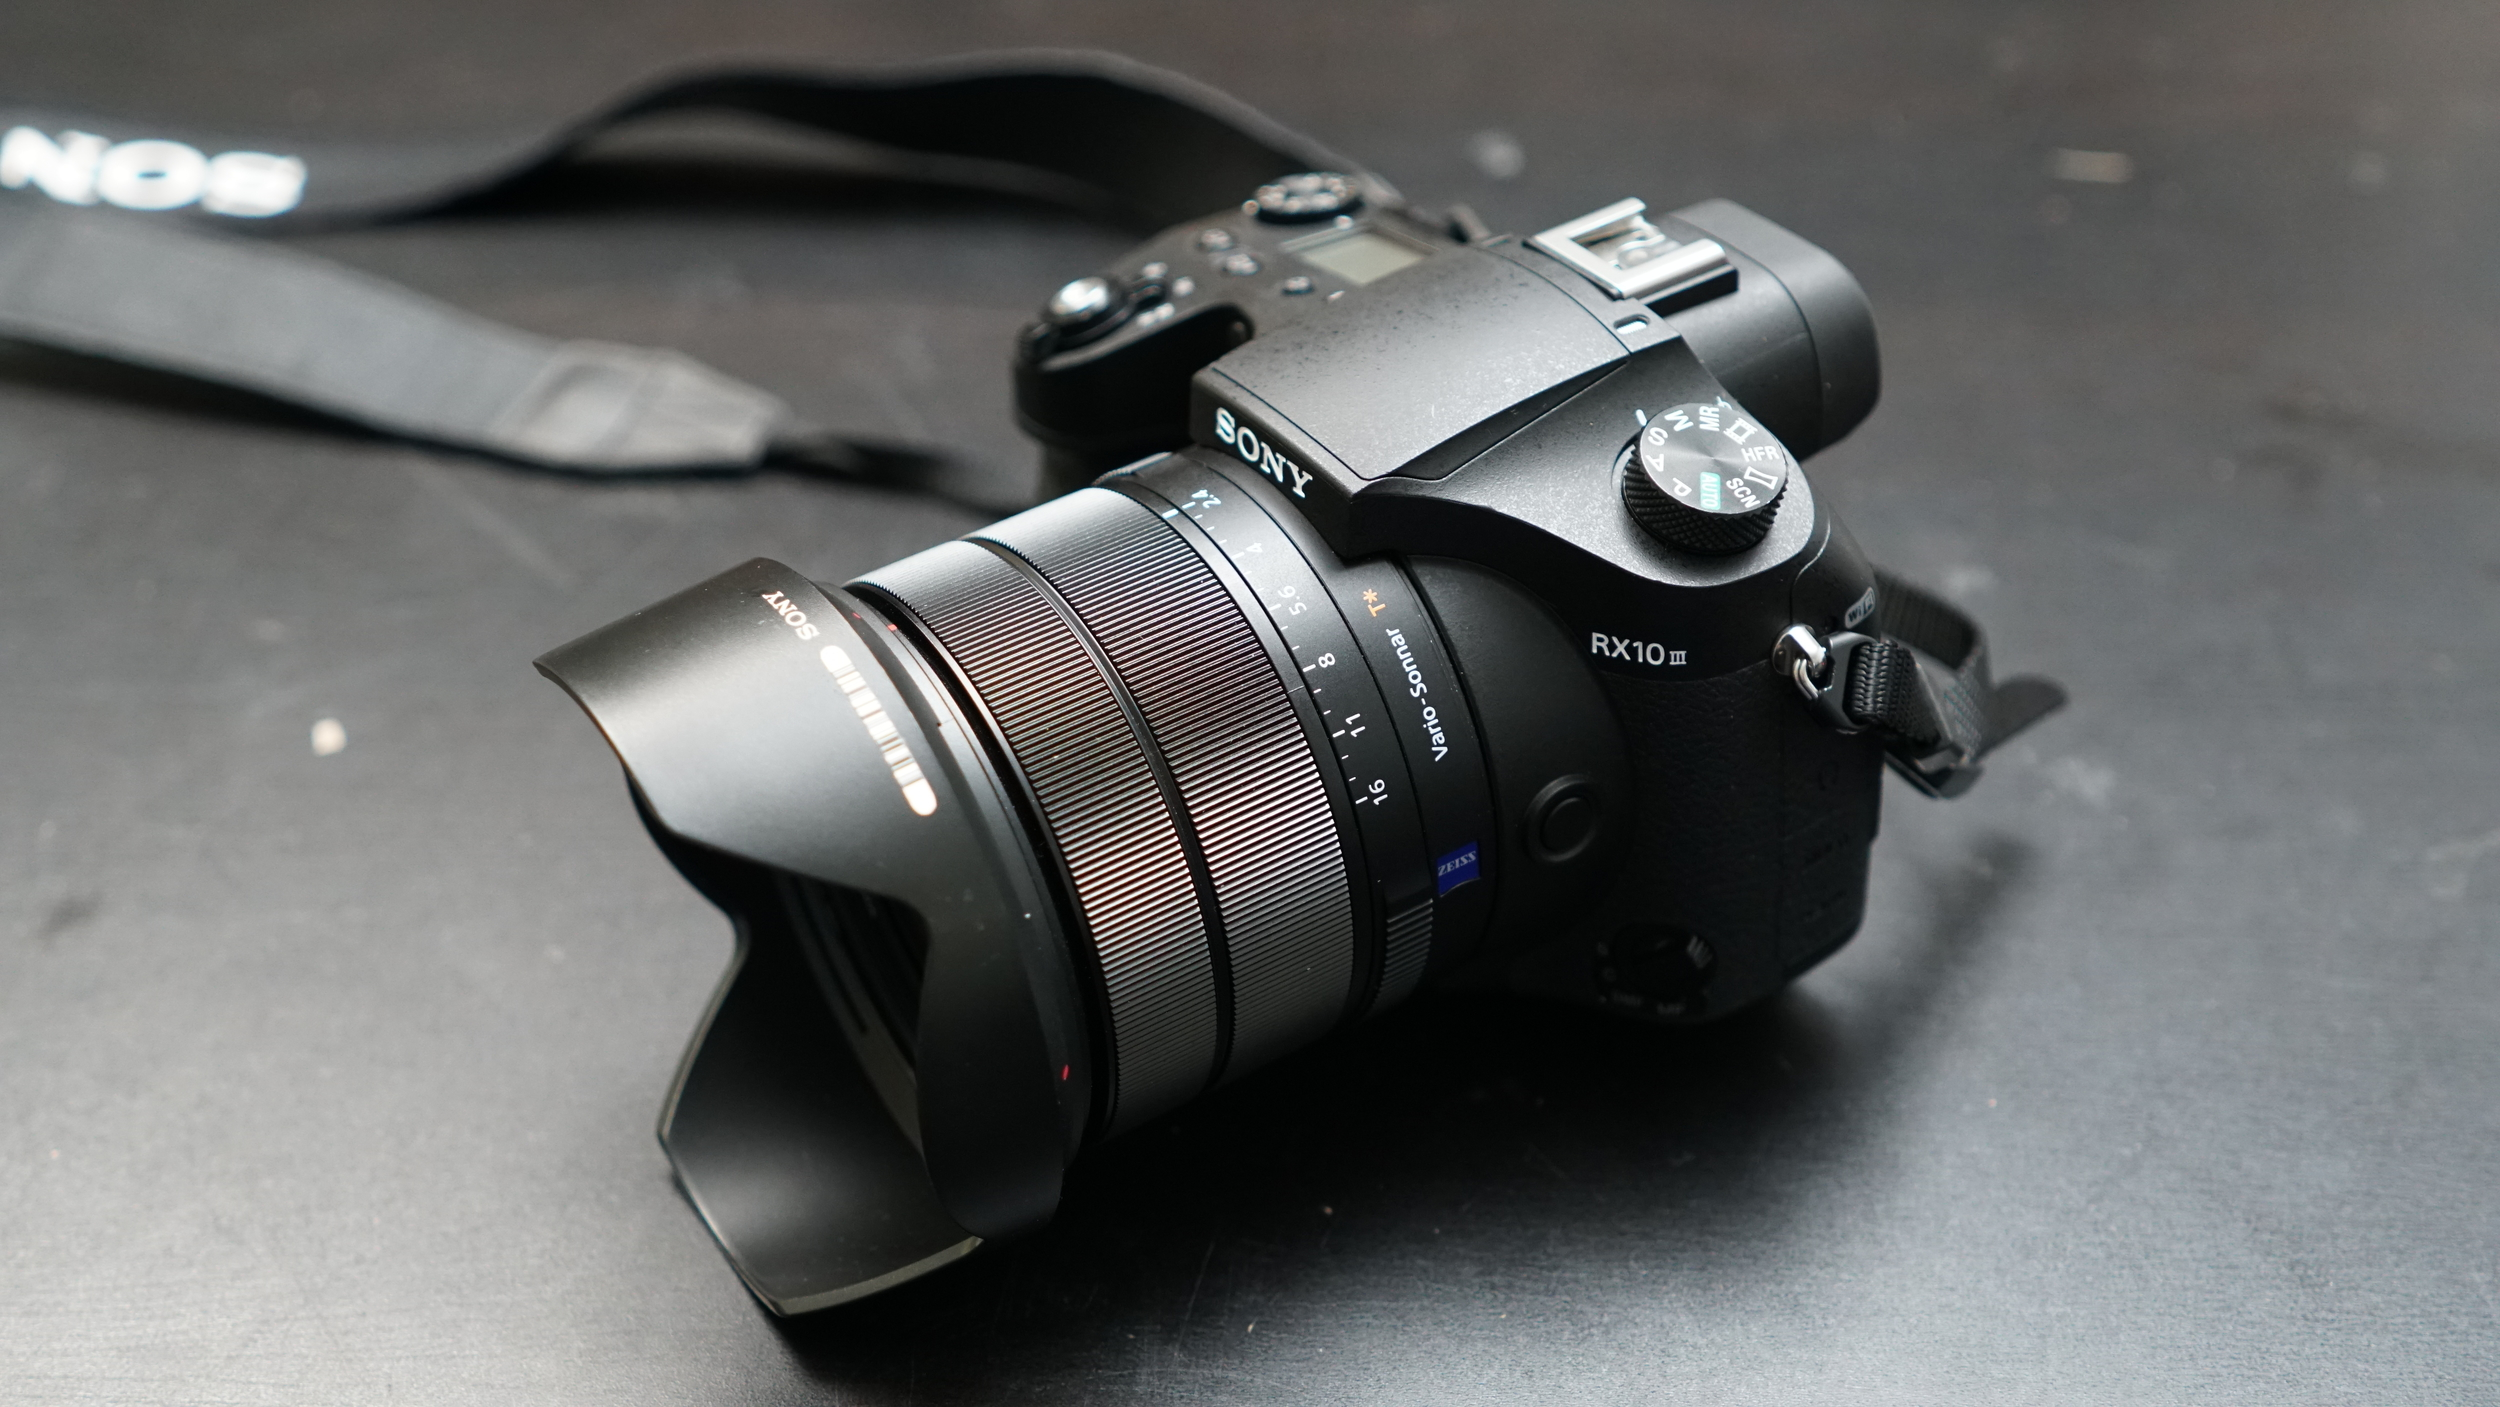 Sony RX10 III    [ B&H | Amazon ]   would give me more optical reach than the 300mm f/2.8, yet at the wide end would go all the way down to a full frame equivalent of 24mm, besting the Batis 18mm on the a6300. I'd used it before and liked the set of trade-offs it represented, but until Mark suggested it I'd never thought of it in this context.